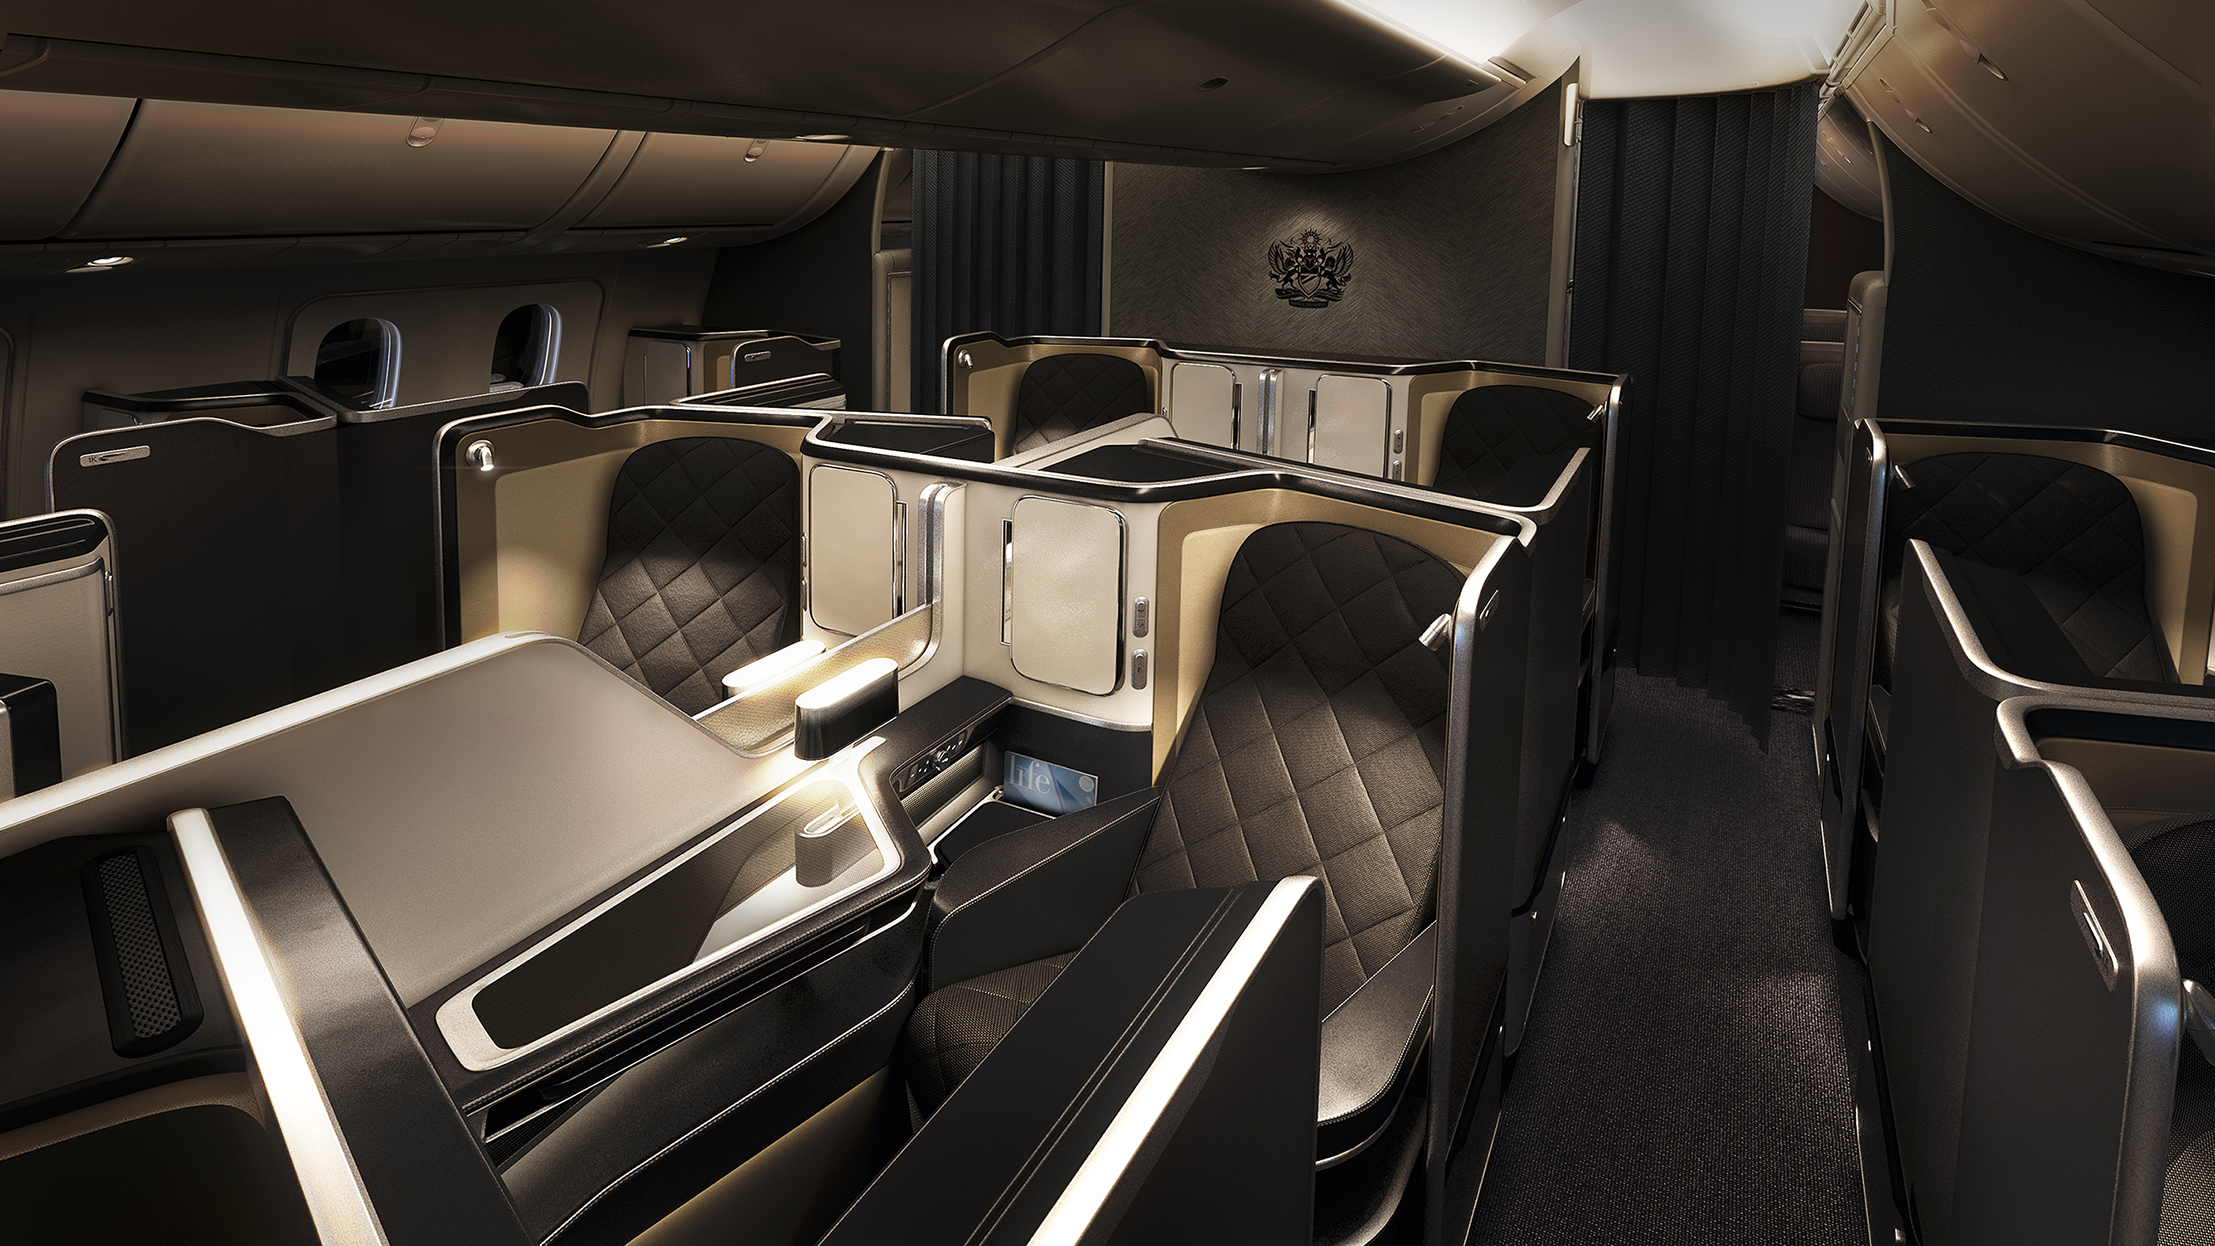 Luxury Plane Interiors: New British Airways Dreamliner | LuxDeco.com Style Guide